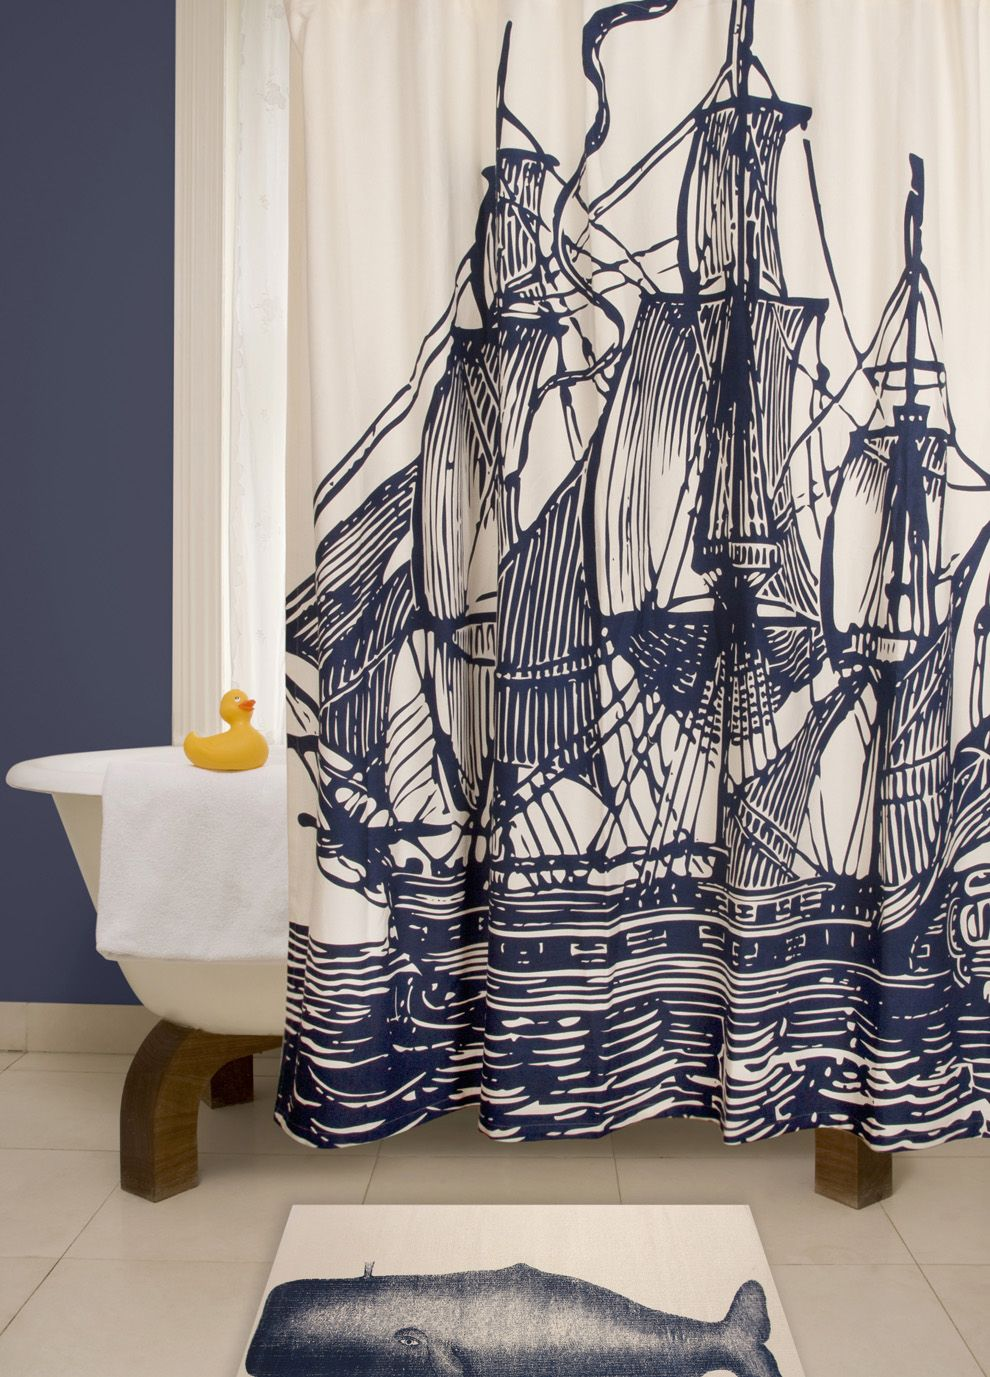 Thomaspaul Ship Shower Curtain Could Make This With Dye And Paint